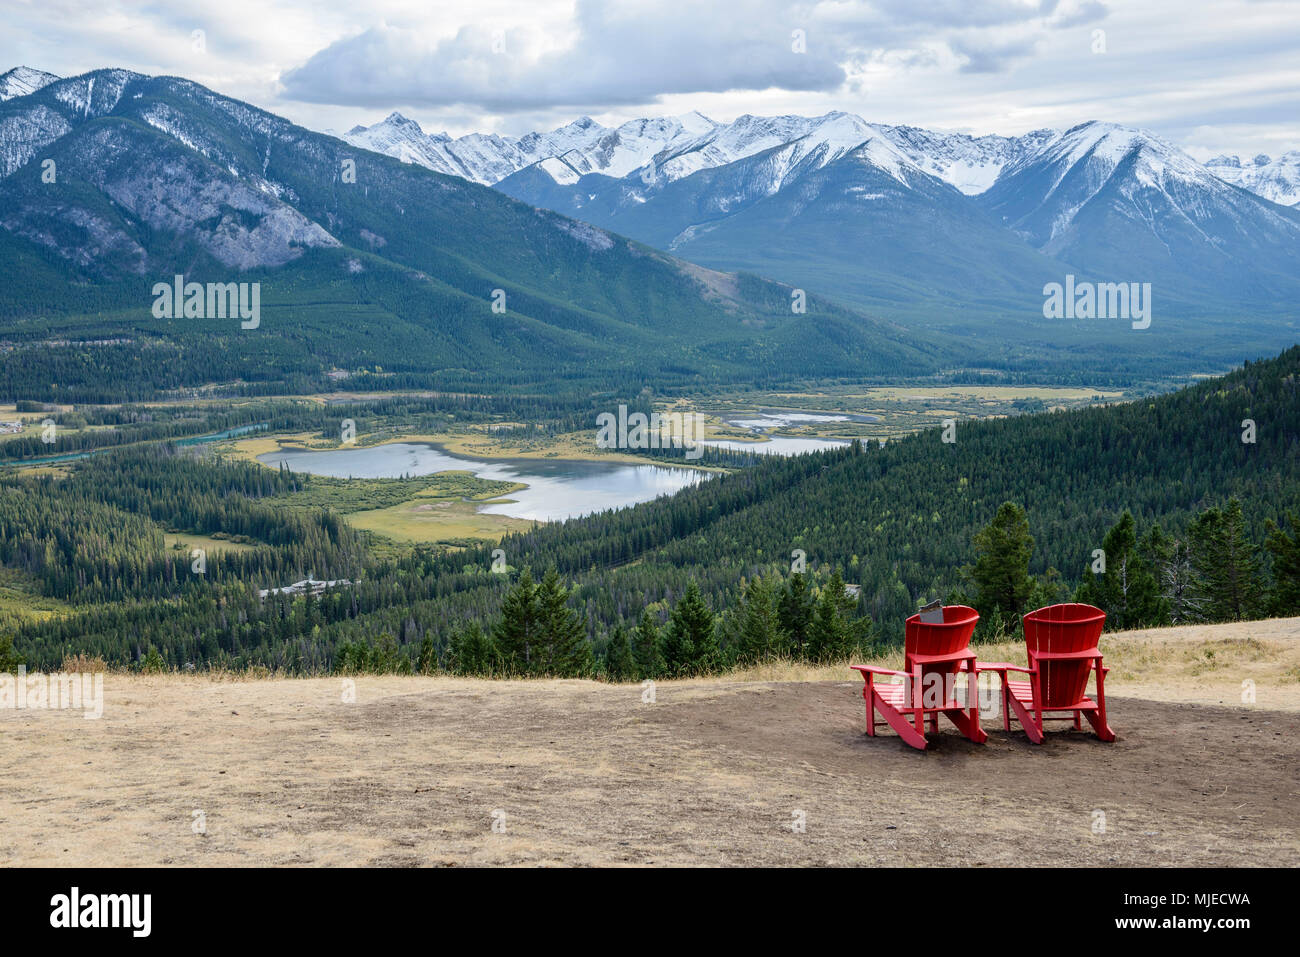 Two red chairs on a flat mountain slope are inviting to sit and enjoy the beautiful view of a green valley near the Banff city, Canada - Stock Image